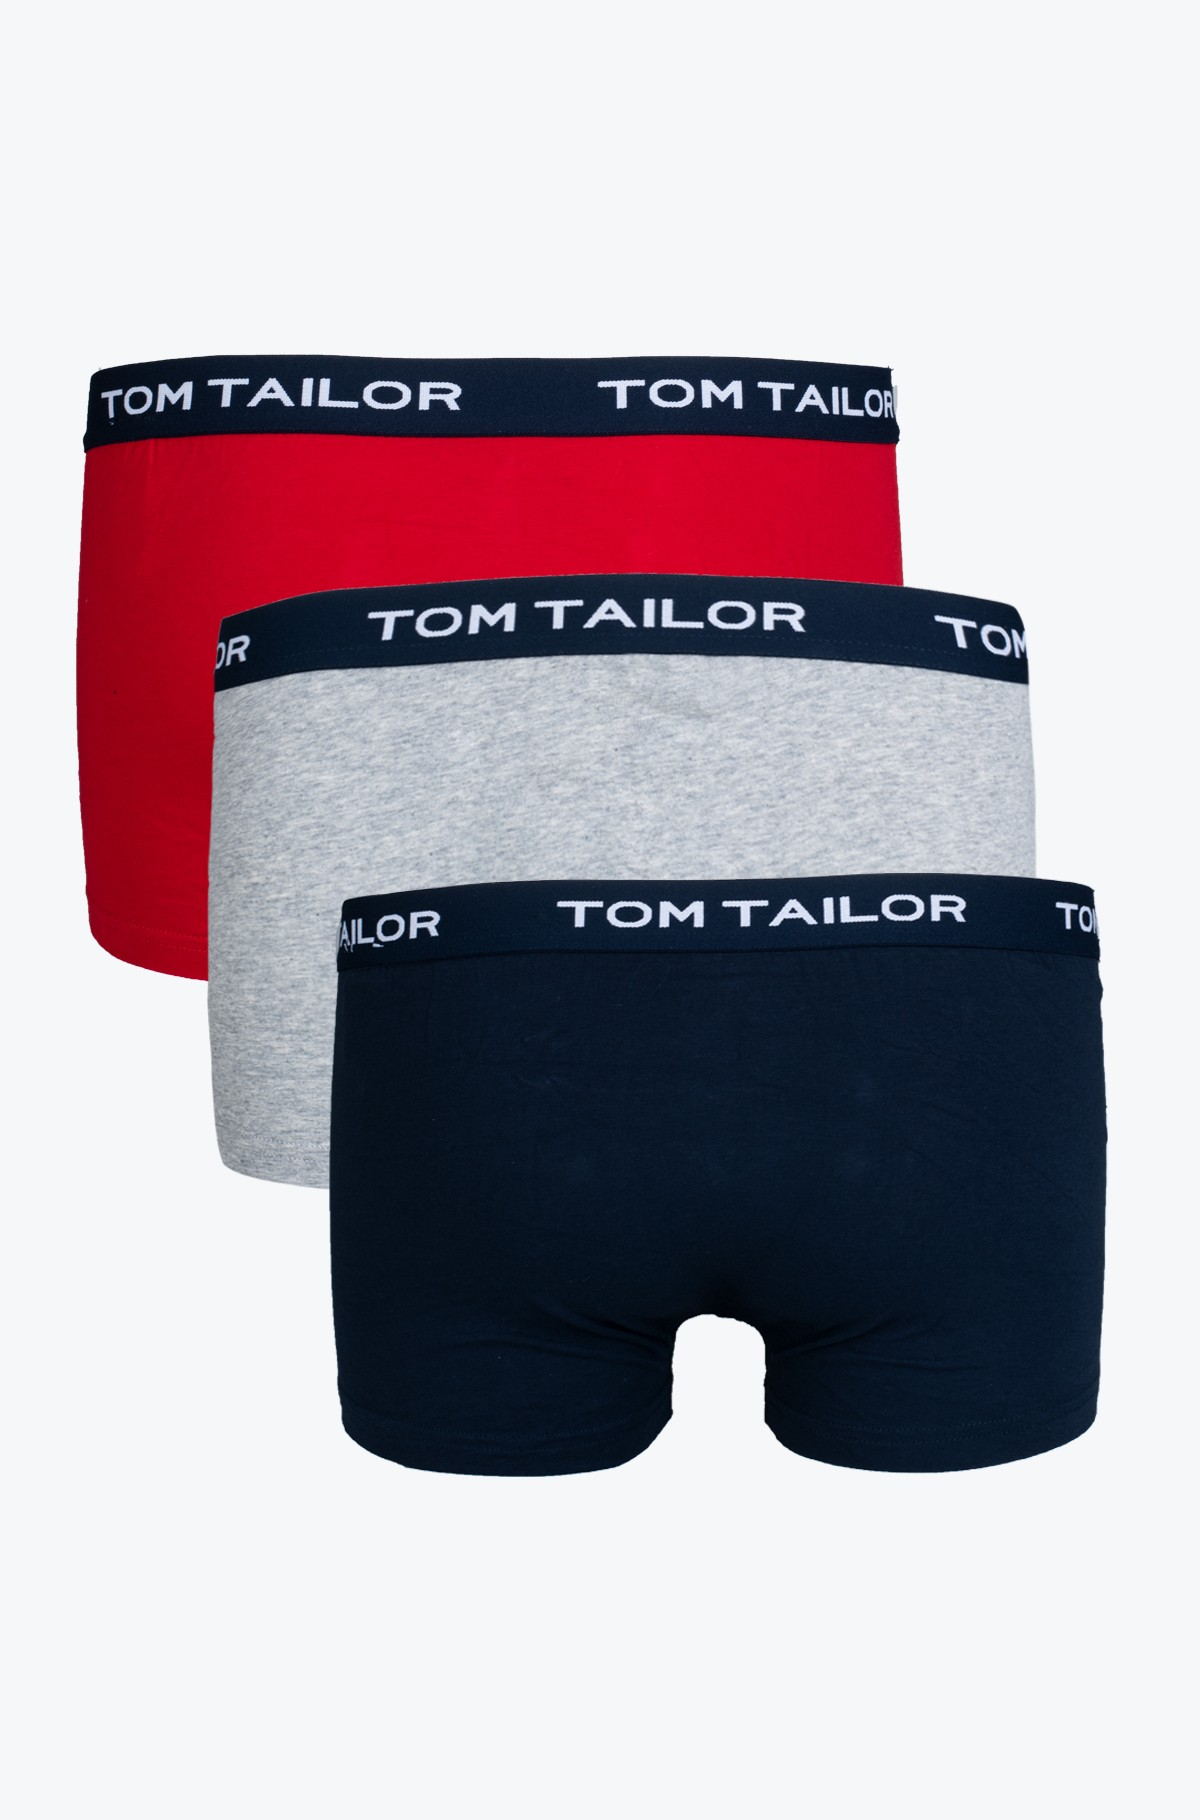 Three pairs of boxers 70162.00.10-full-2